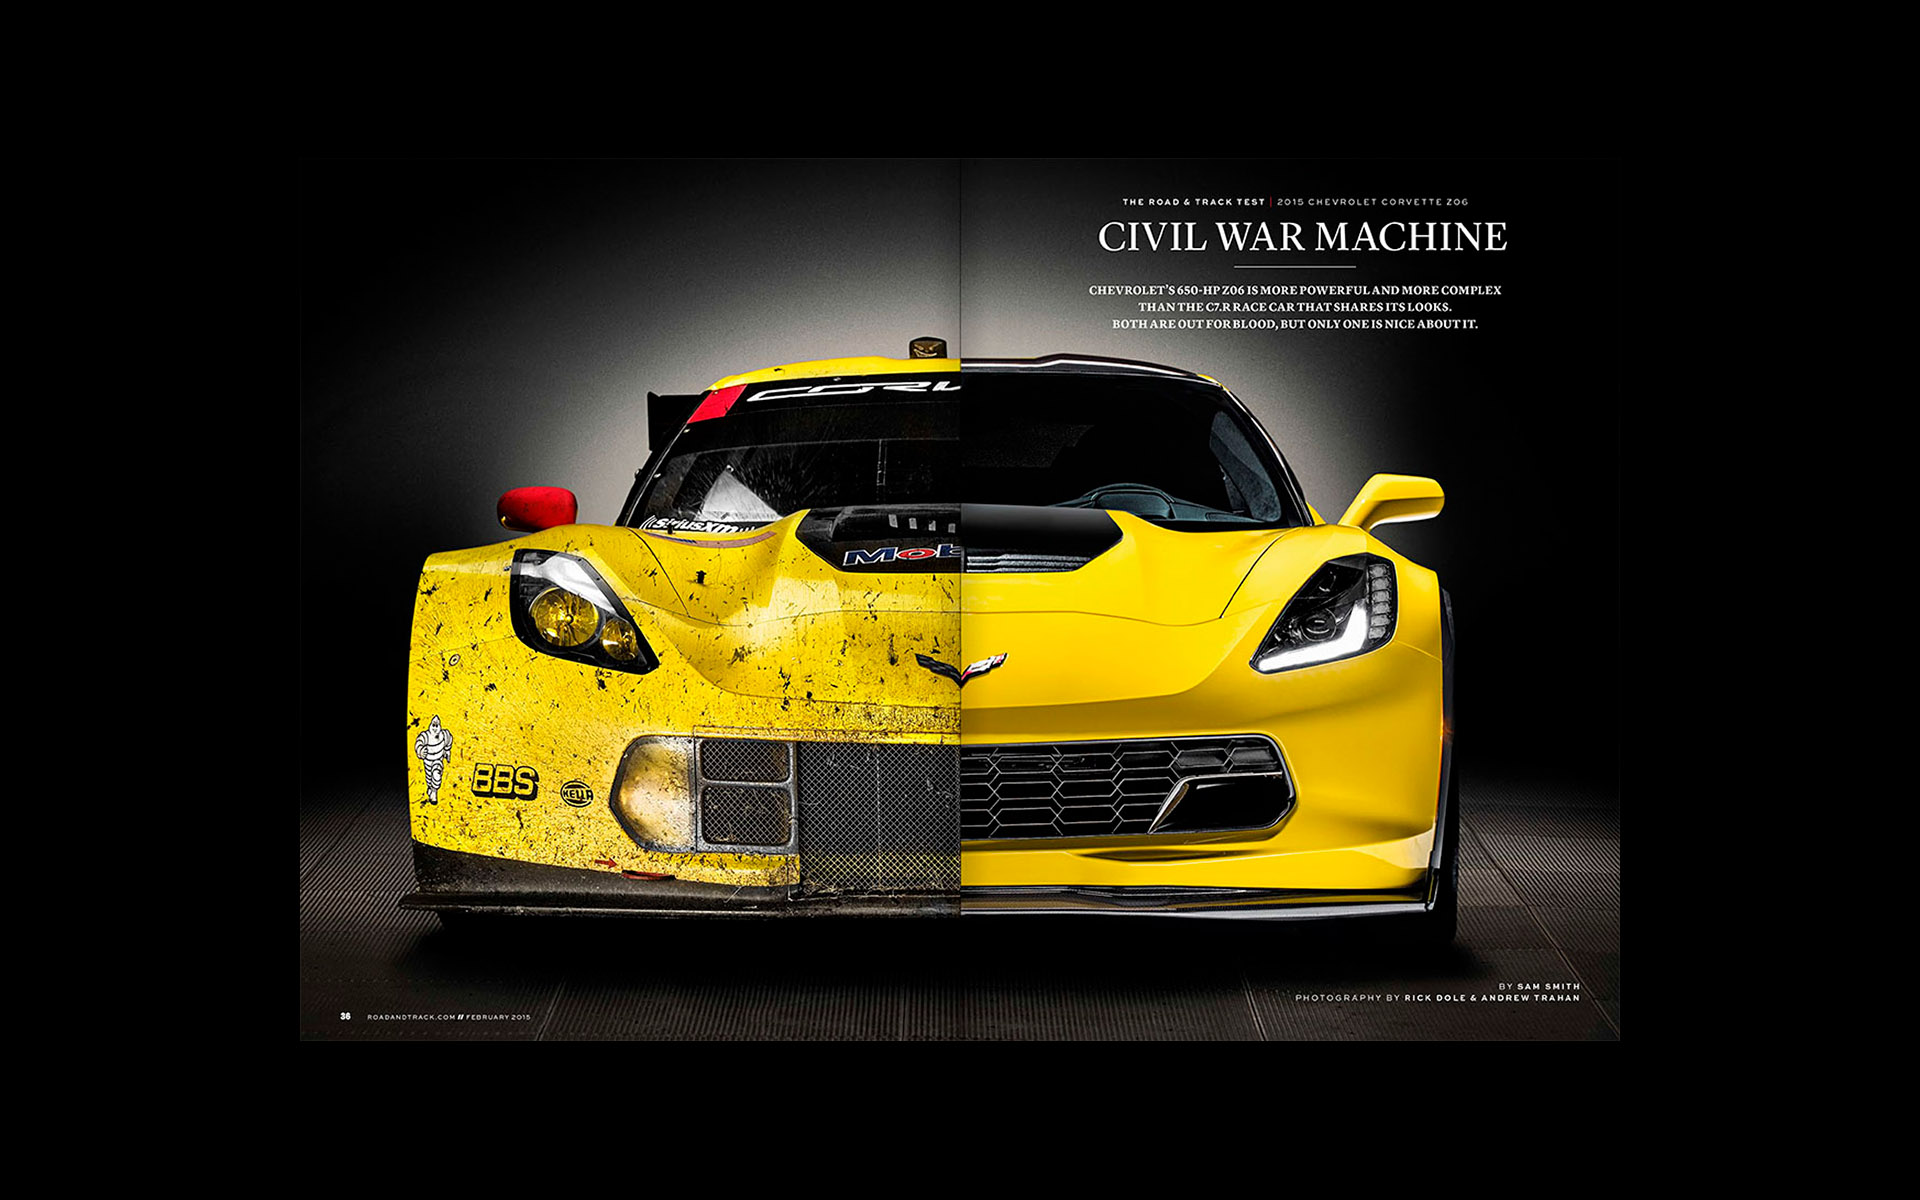 Corvette Z06 Road & Track magazine ©Richard Dole